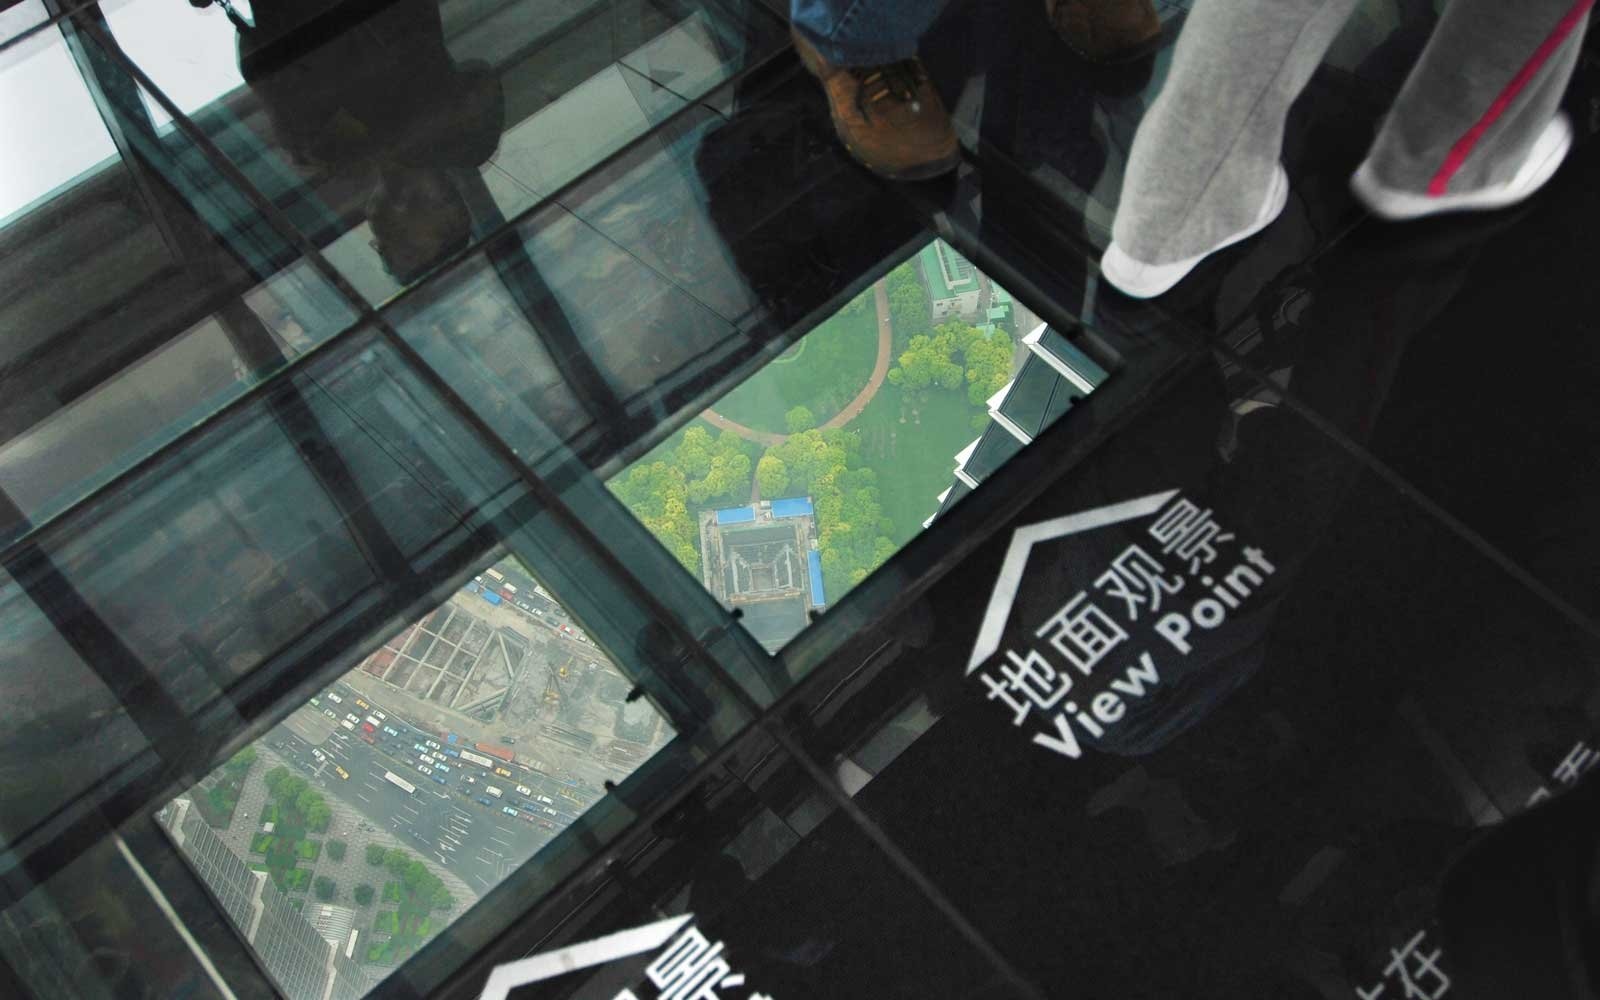 Glass sections in the floor of the observation deck on the 101st floor of the Shanghai World Financial Center